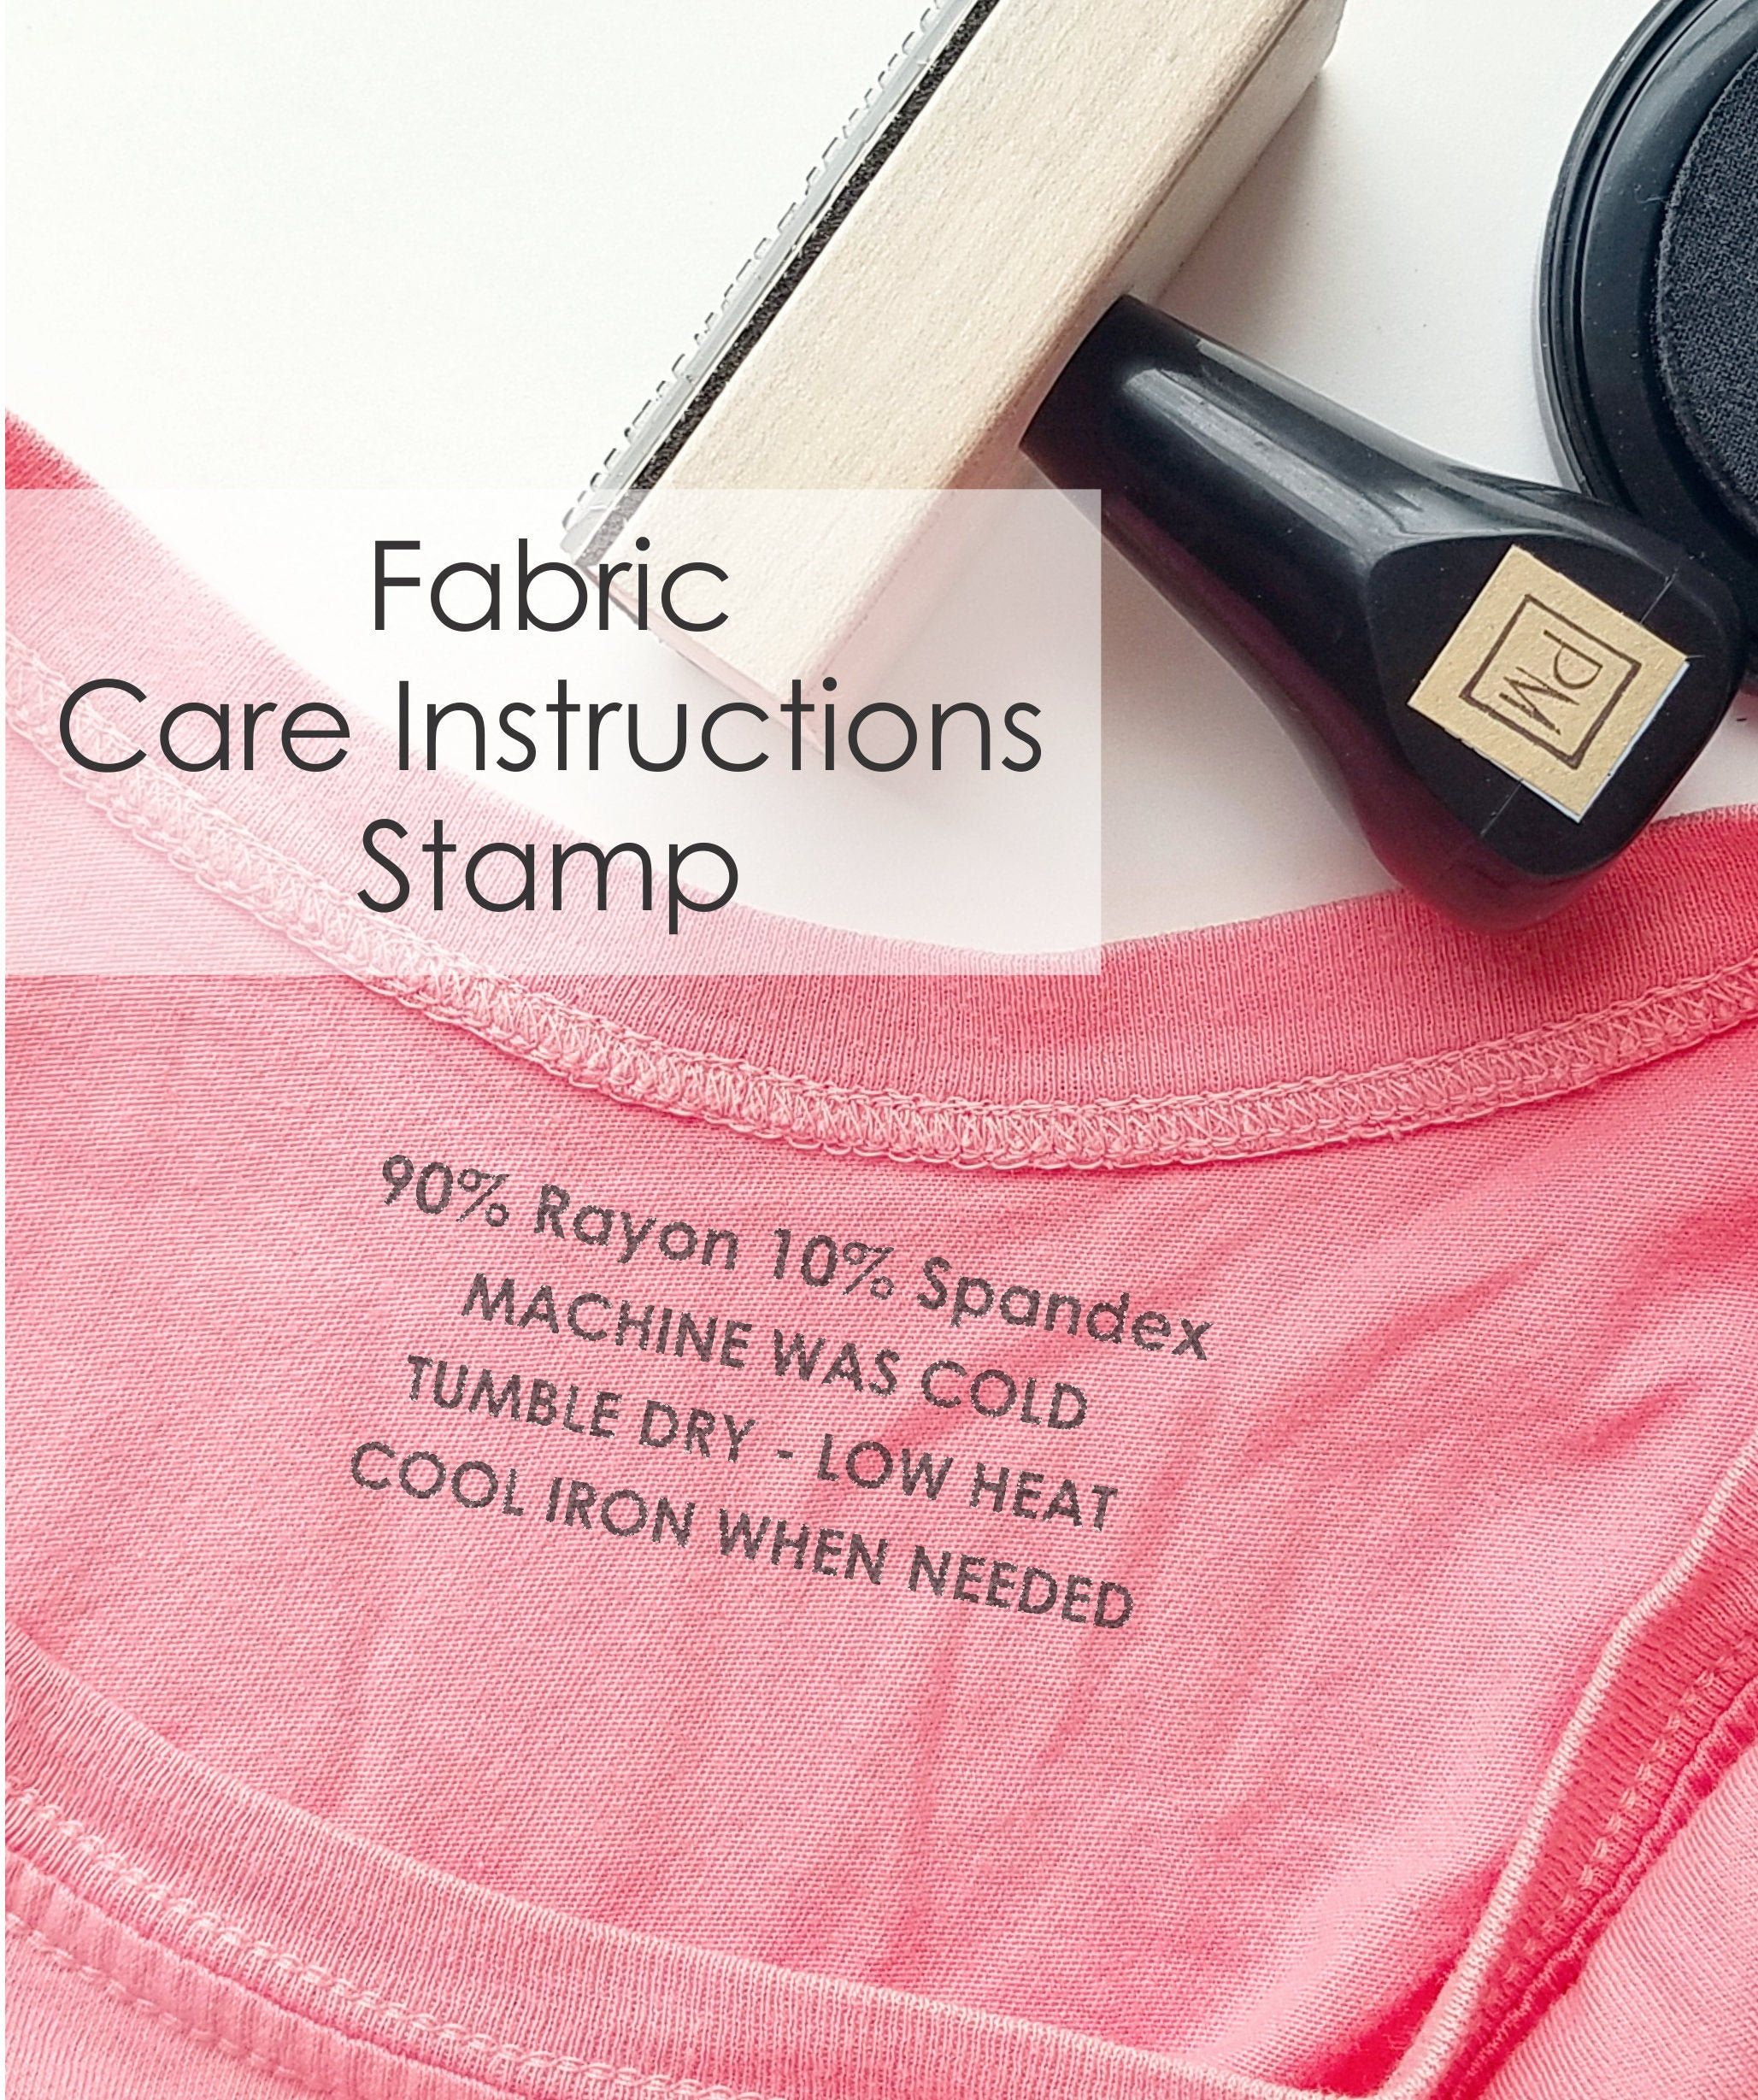 Washing Instruction Label Stamp Fabric Care Instructions